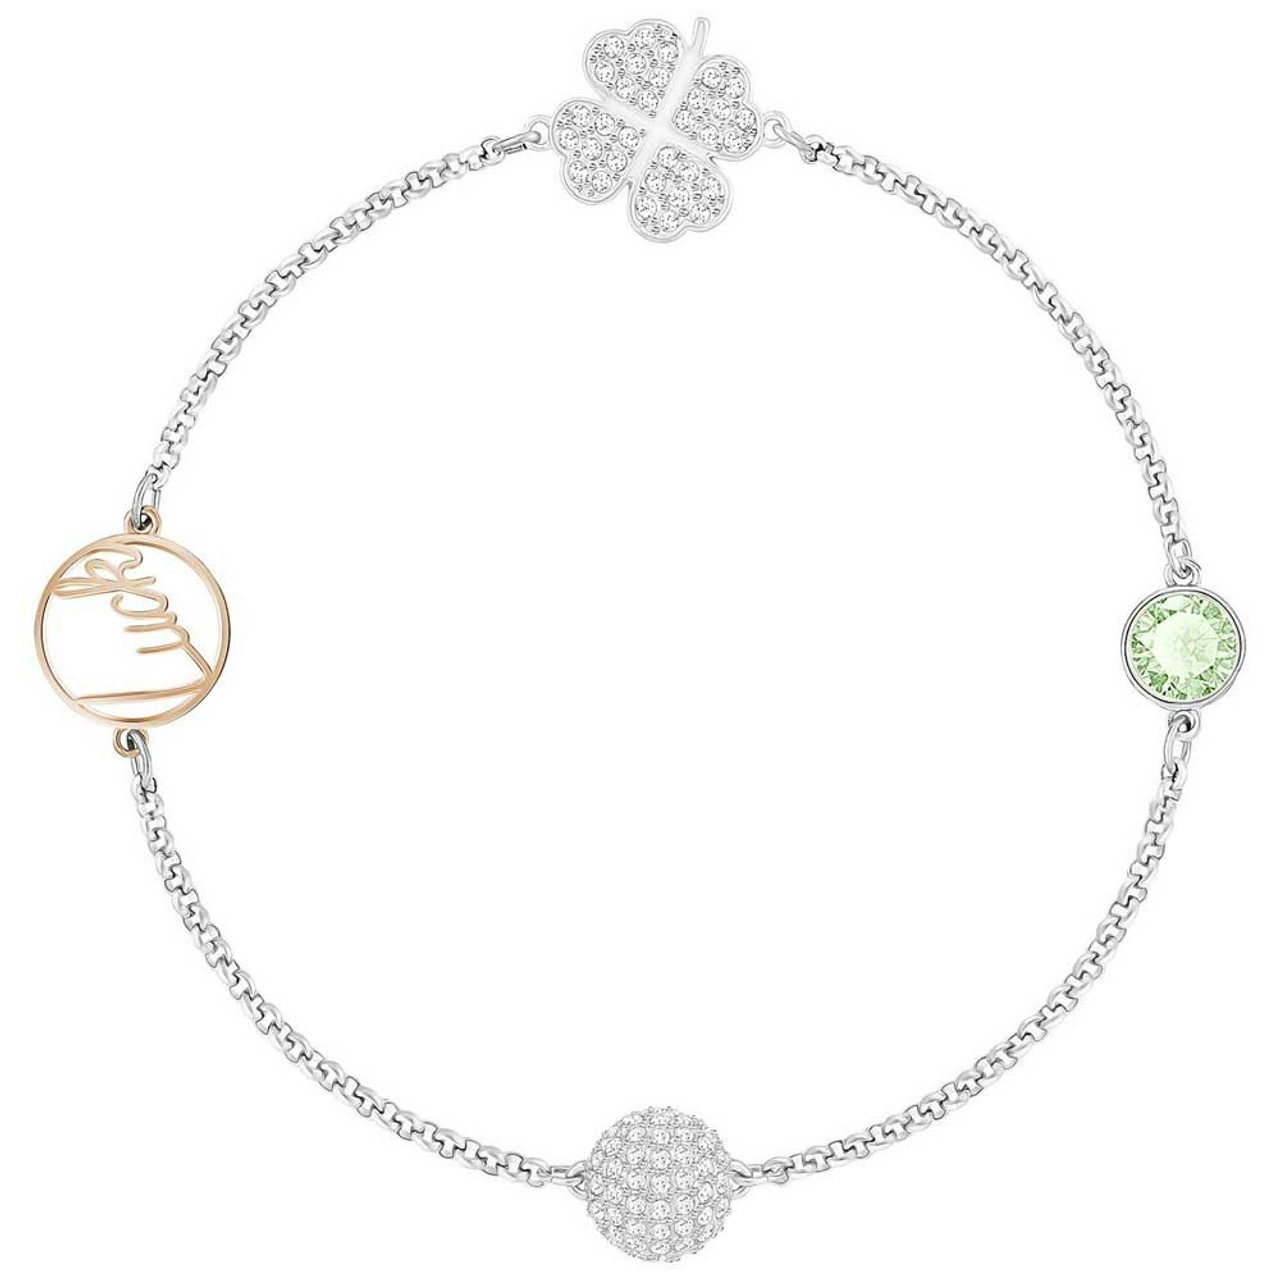 ea329f3d953a3 Swarovski Remix Collection Bracelet with Clover and